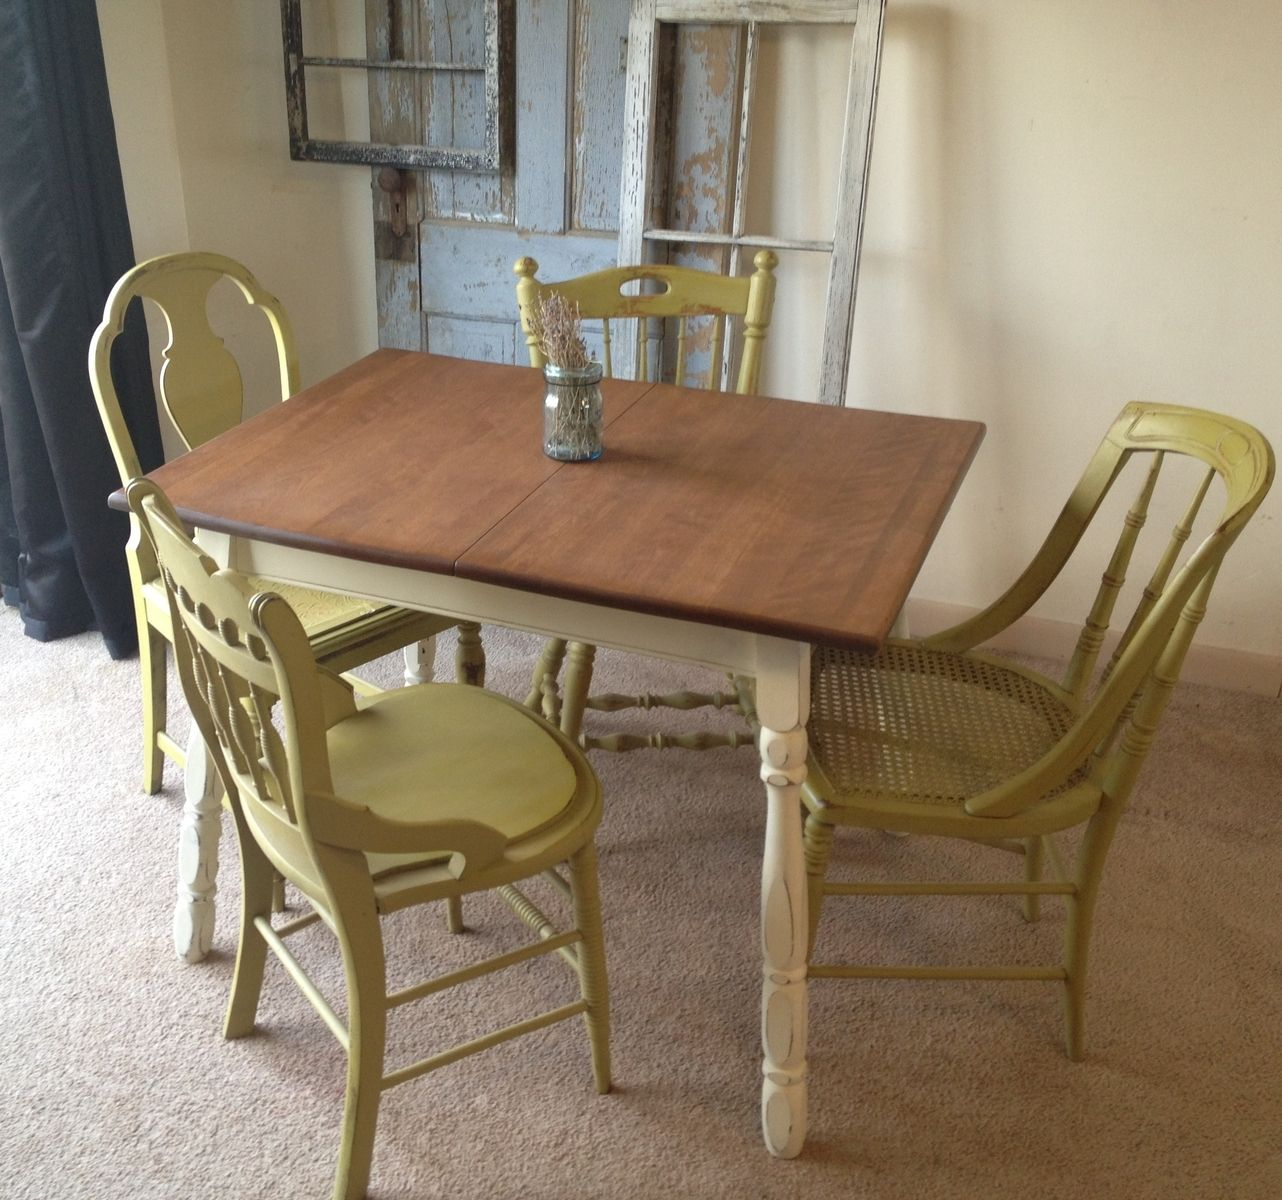 Custom made vintage small kitchen table with four miss matched chairs